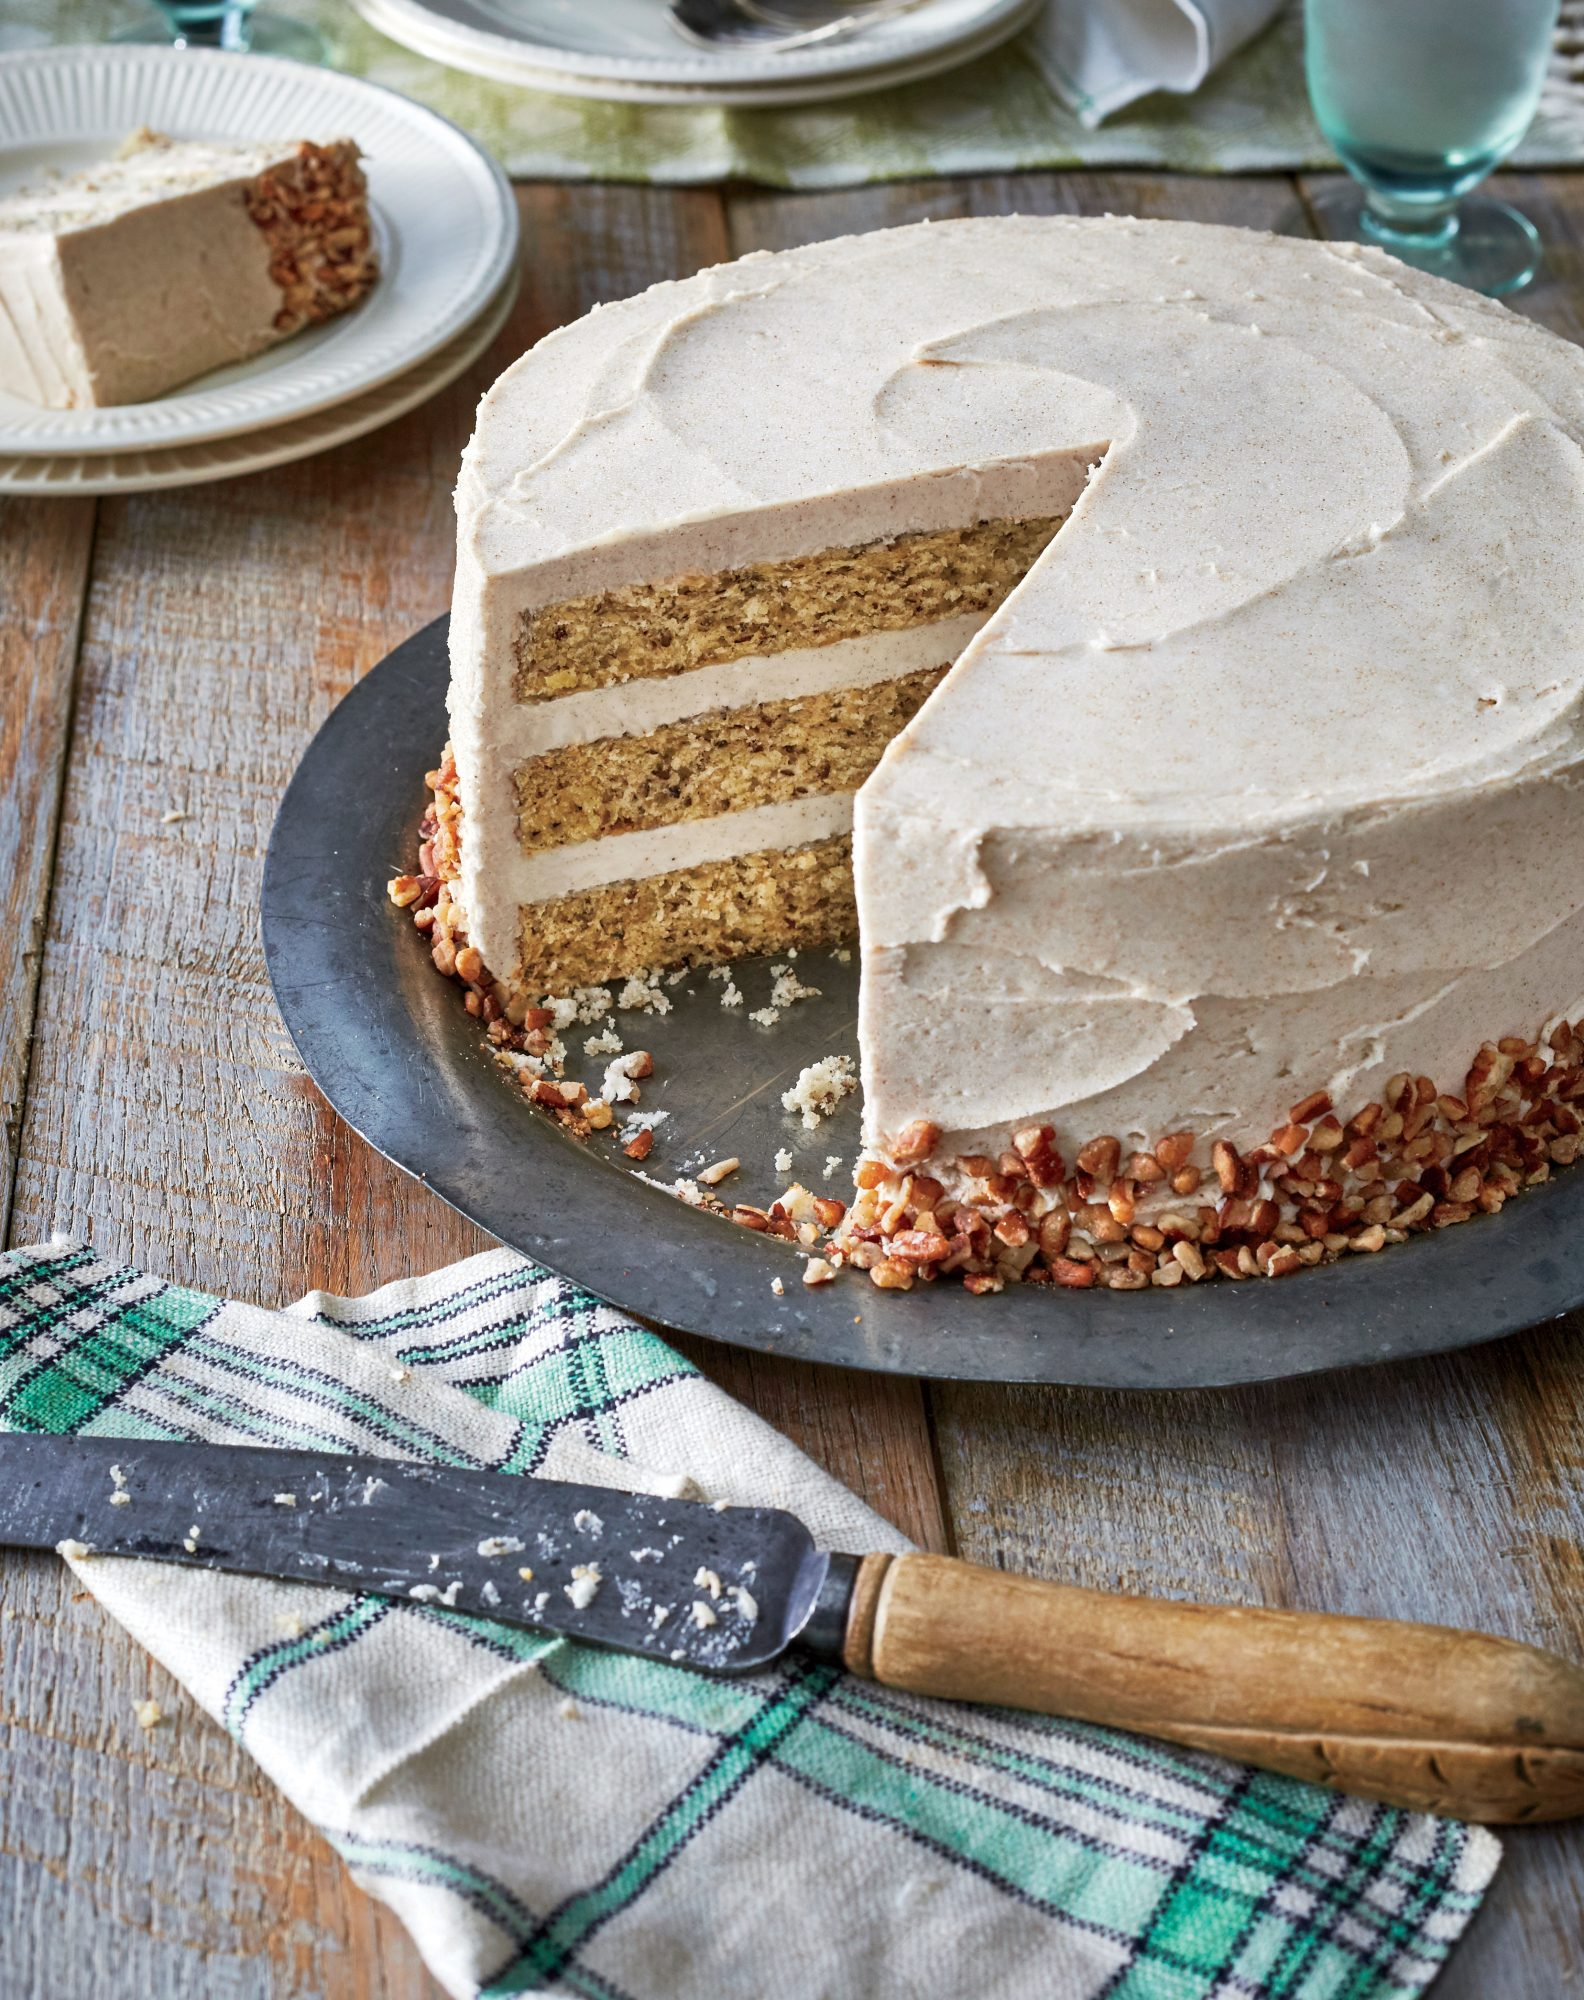 Southern Living Butter Pecan Layer Cake